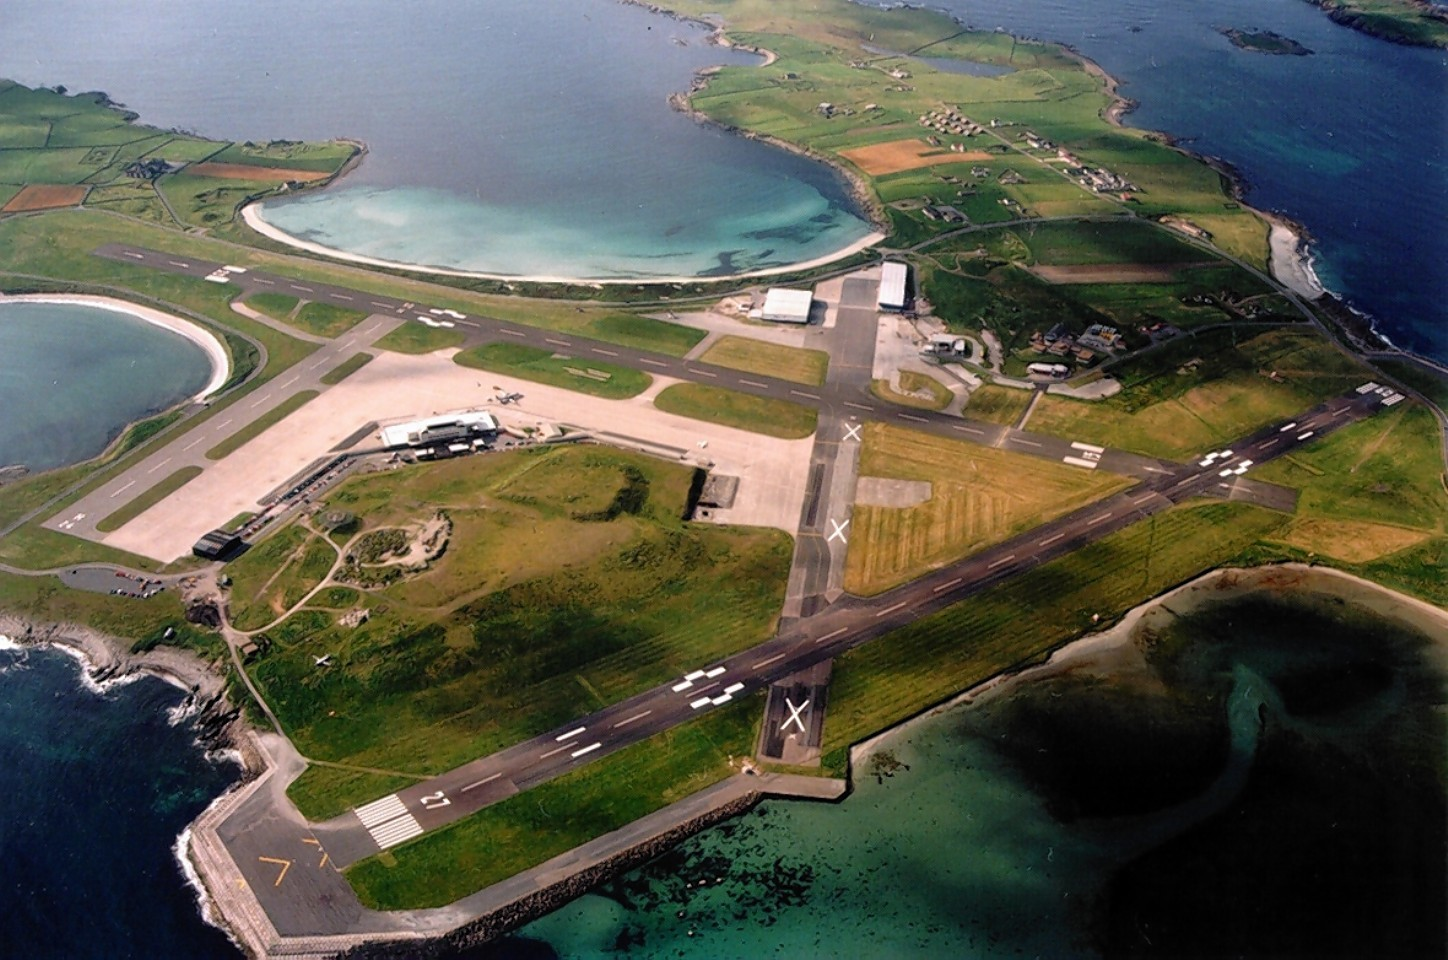 Sumburgh Airport was closed because of an emergency situation on Sunday afternoon.